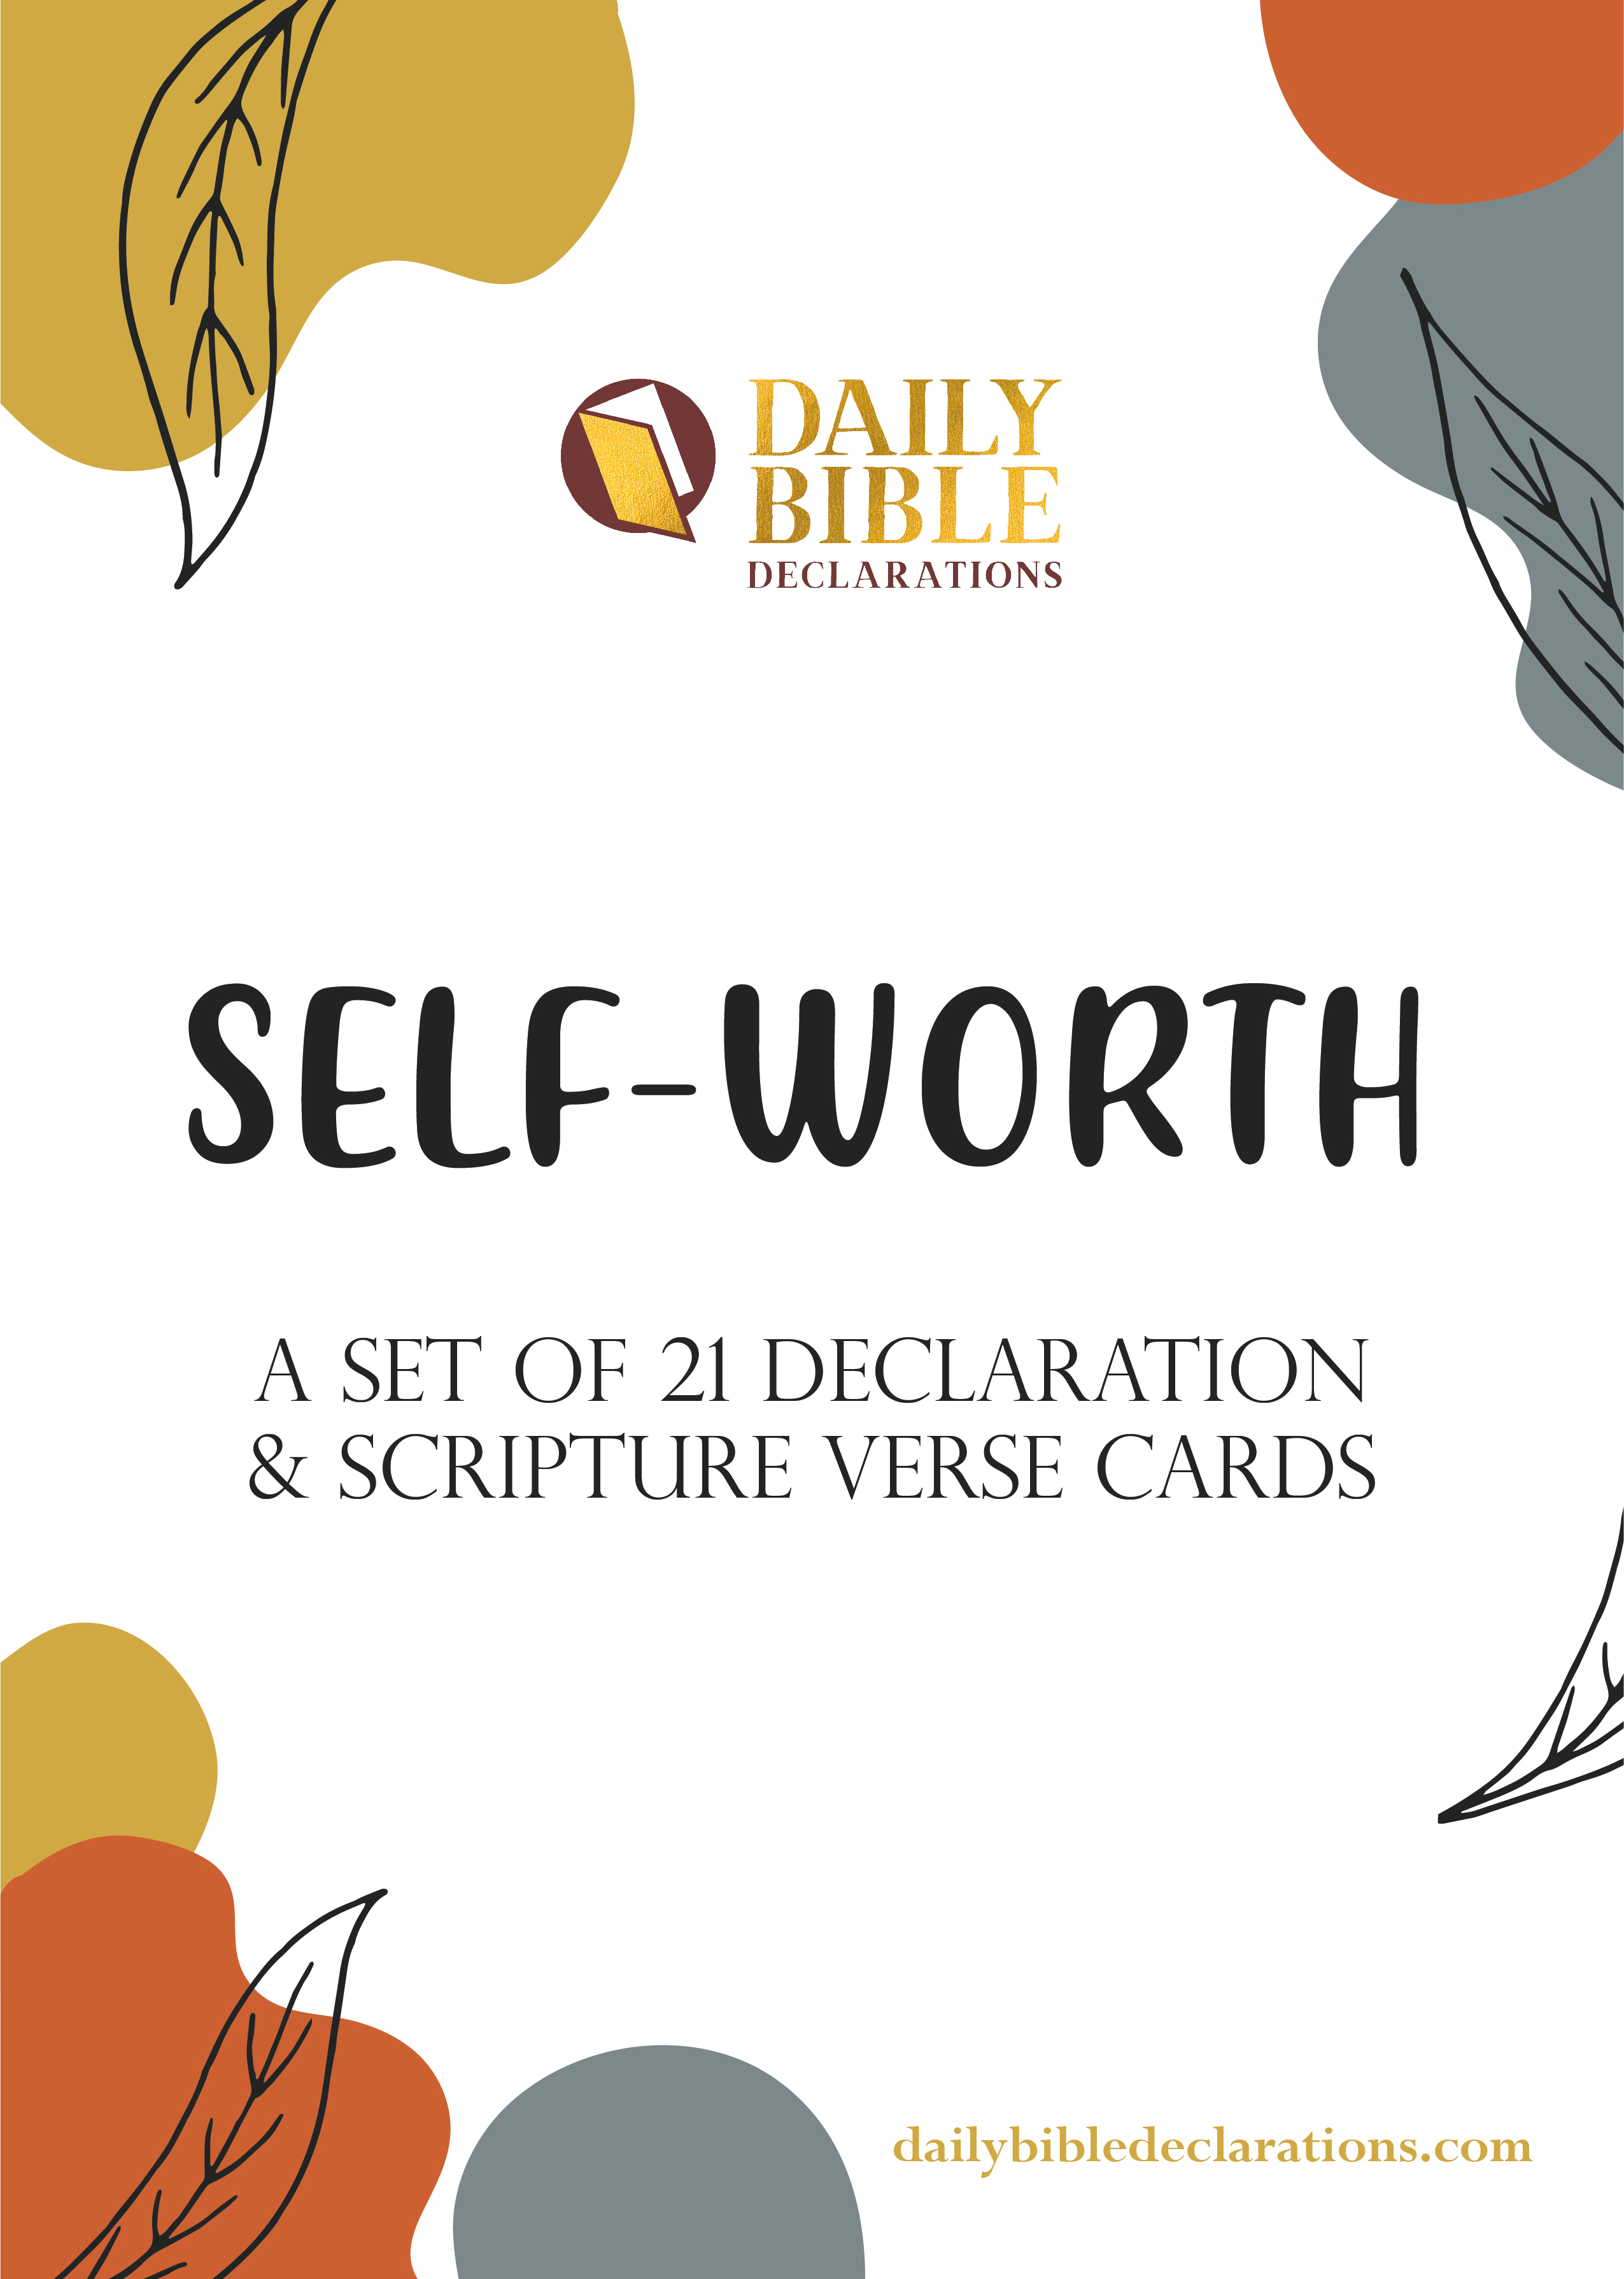 Self-Worth Declaration Encouraging Uplifting Bible Verse Card